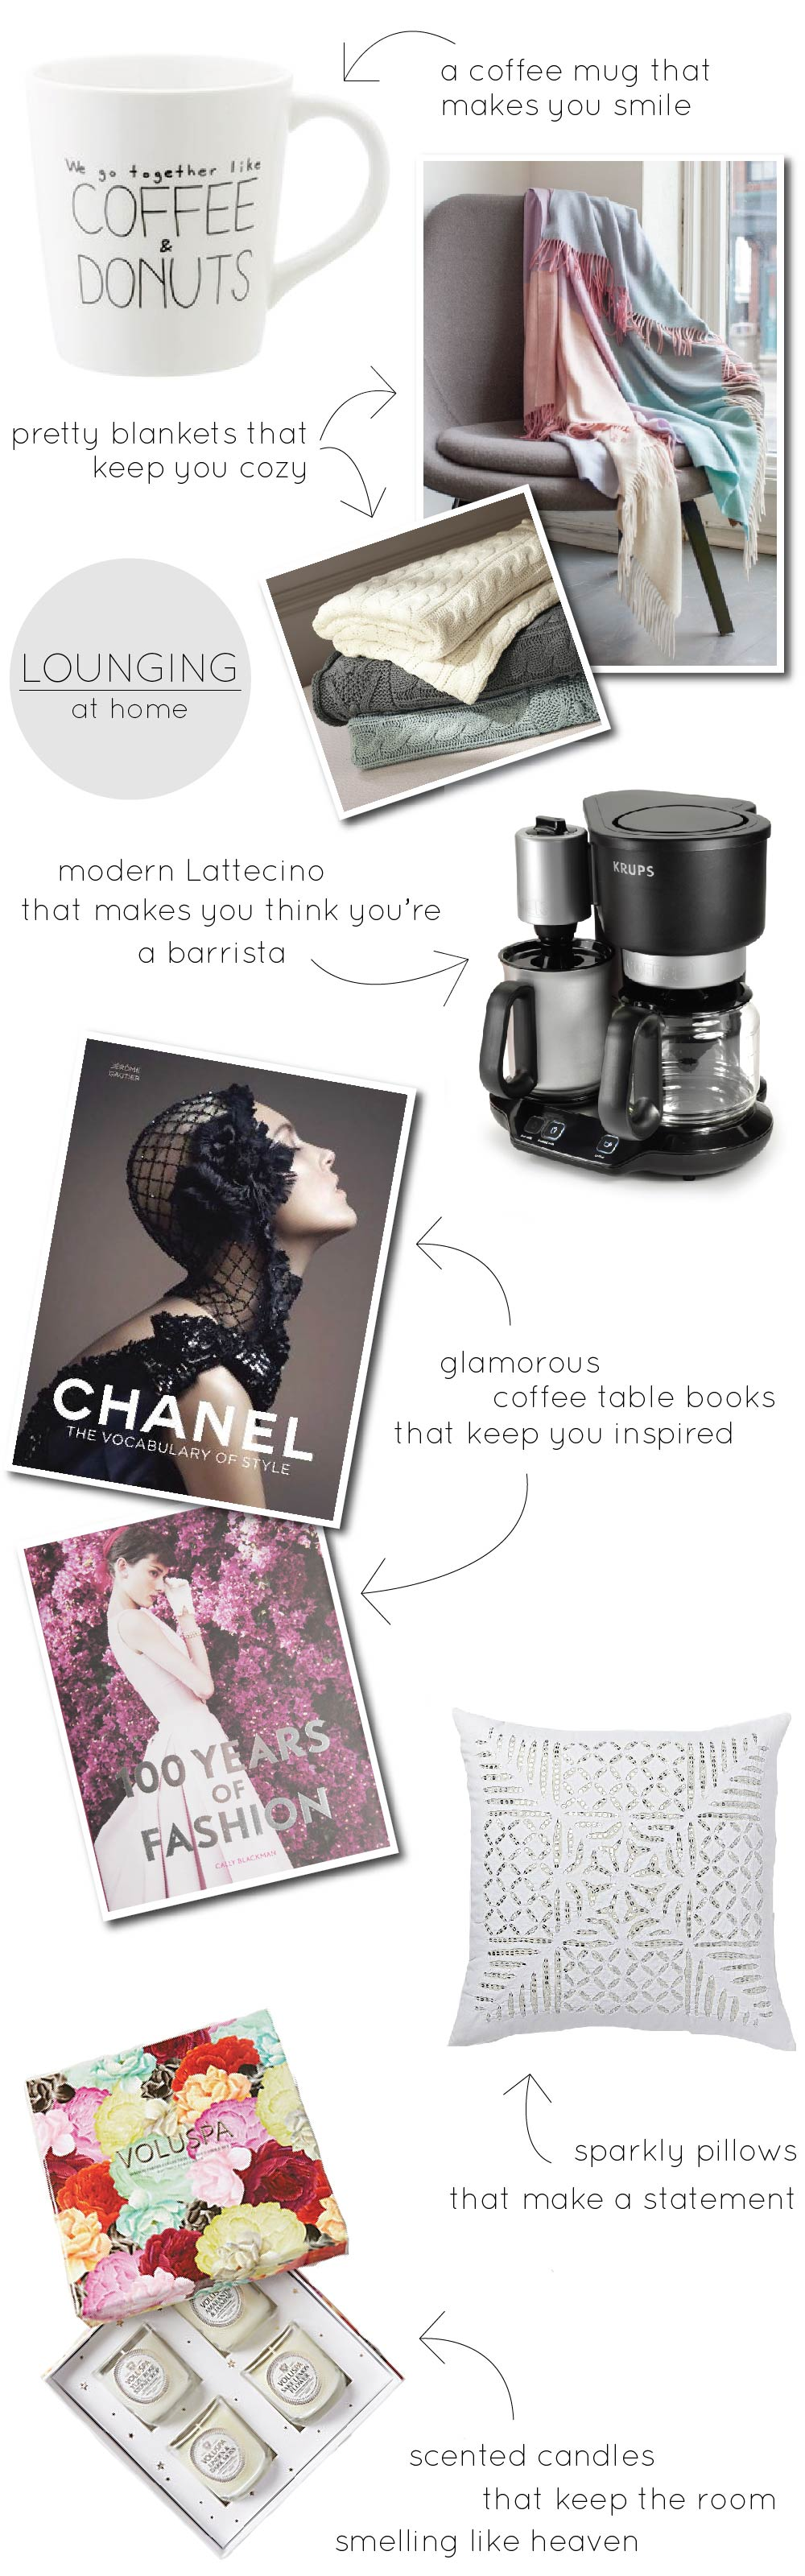 home decor, life and style, lounging, gift ideas, gifts, coffee table books, mugs with quotes, pillows, candles, coffe makers, fashion books, chanel books, chanel coffee table book, 100 years of fashion book